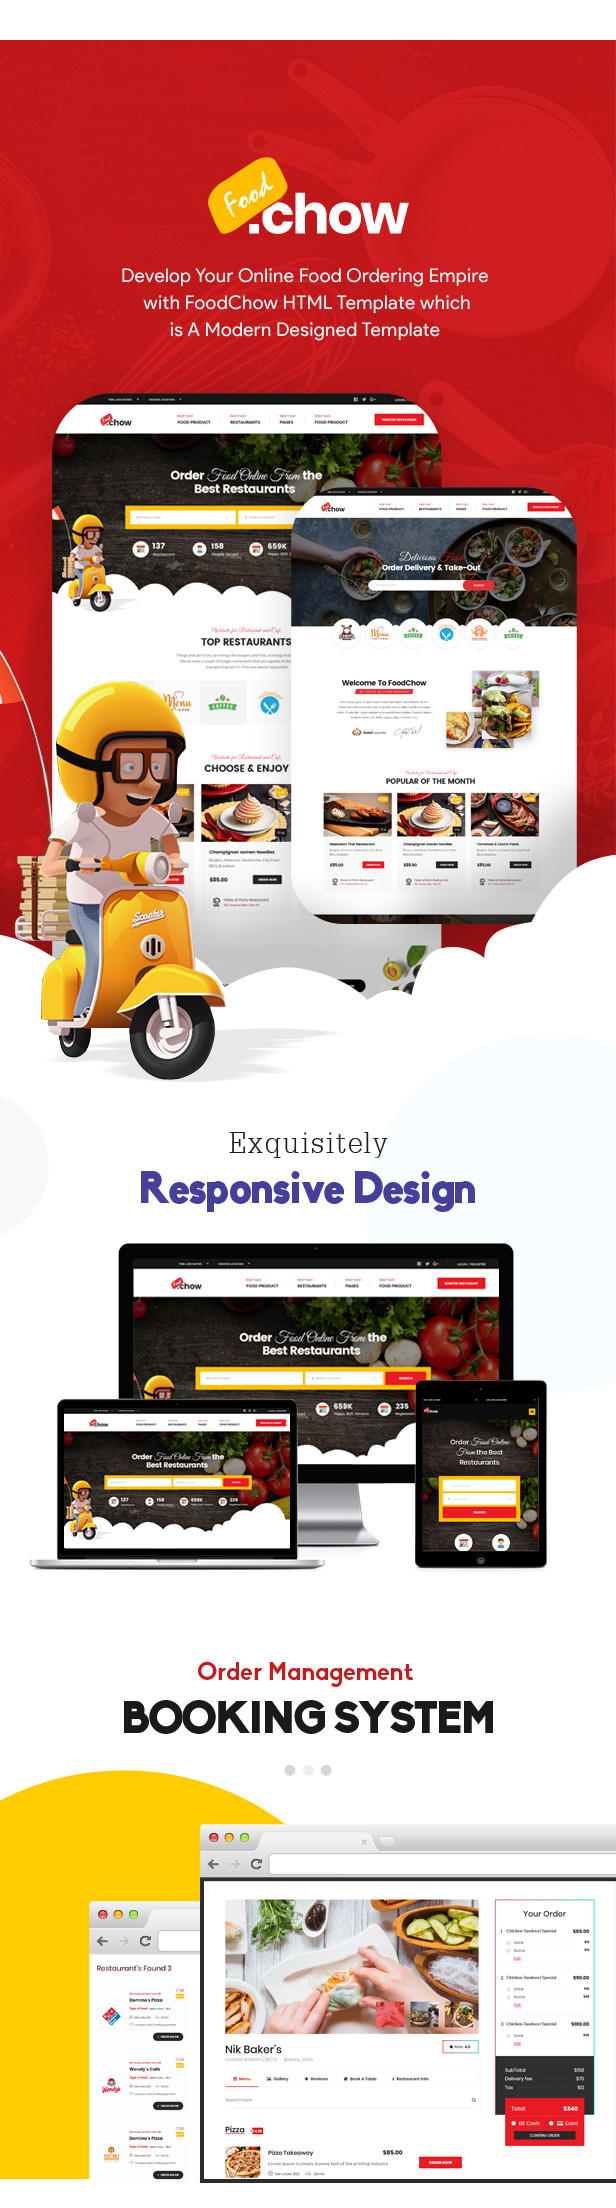 FoodChow - A Food Ordering or Hotel Directory HTML Template - 1